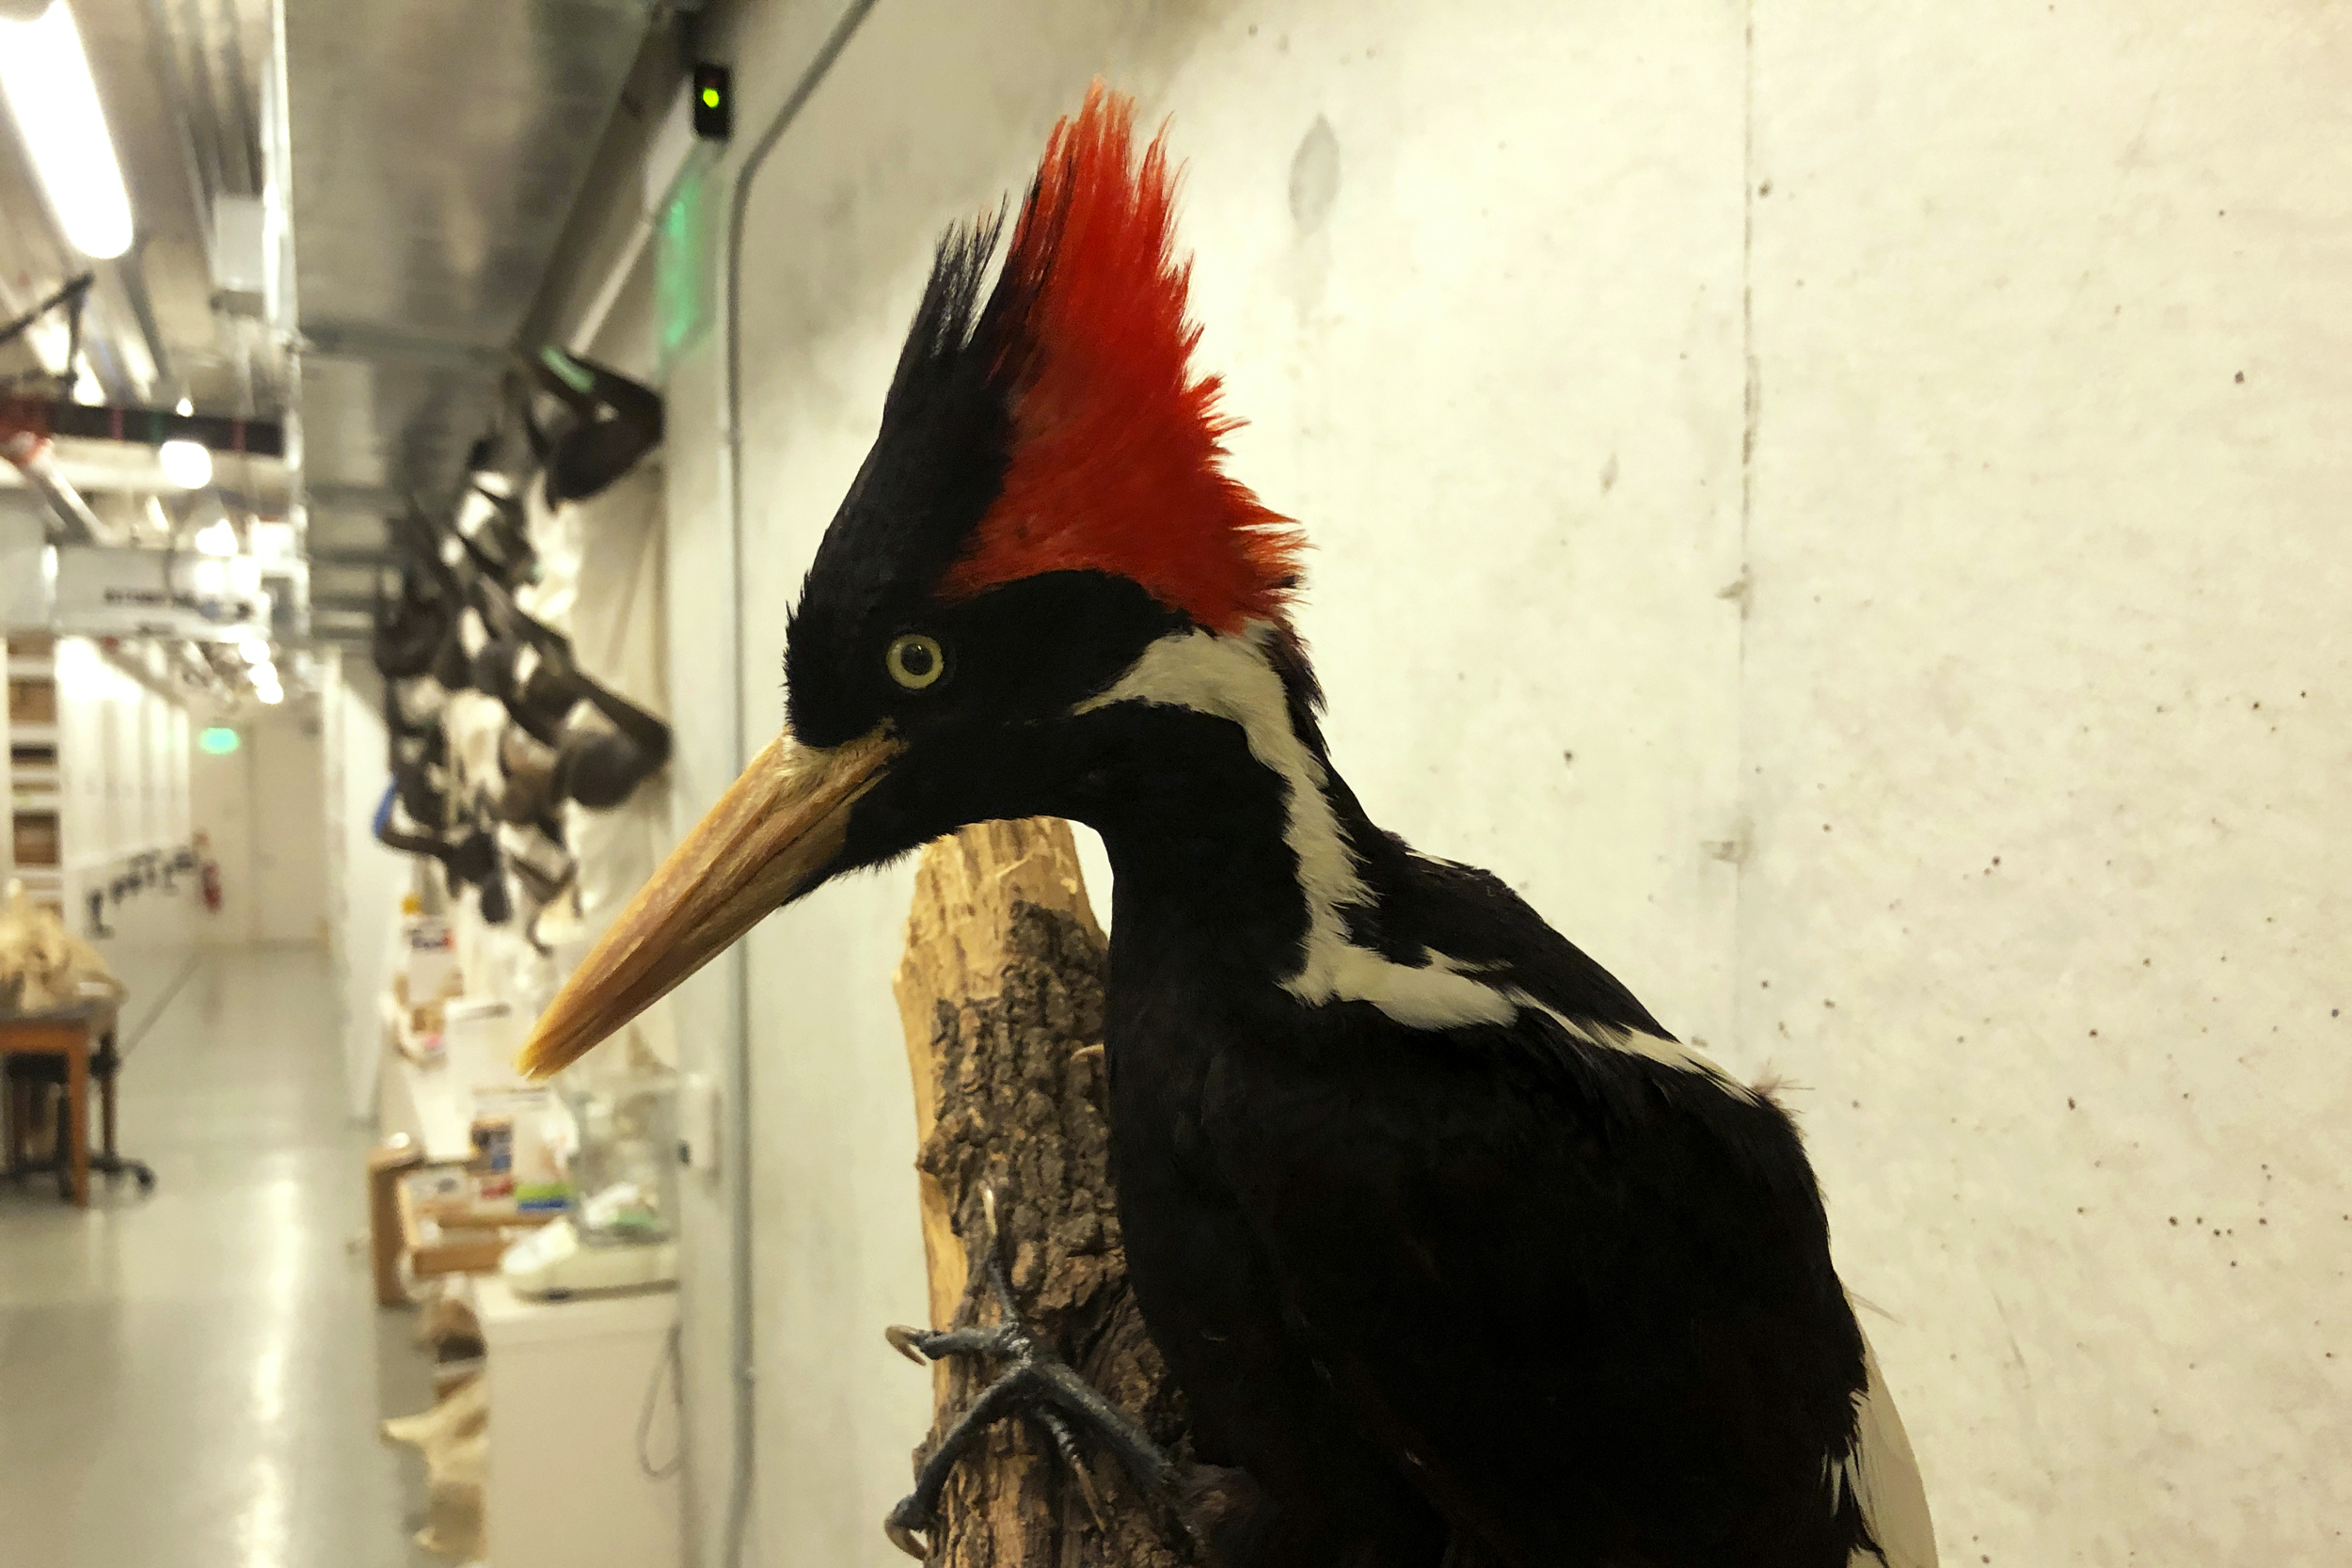 Ivory-billed woodpecker, more than 20 other species declared extinct by U.S. government